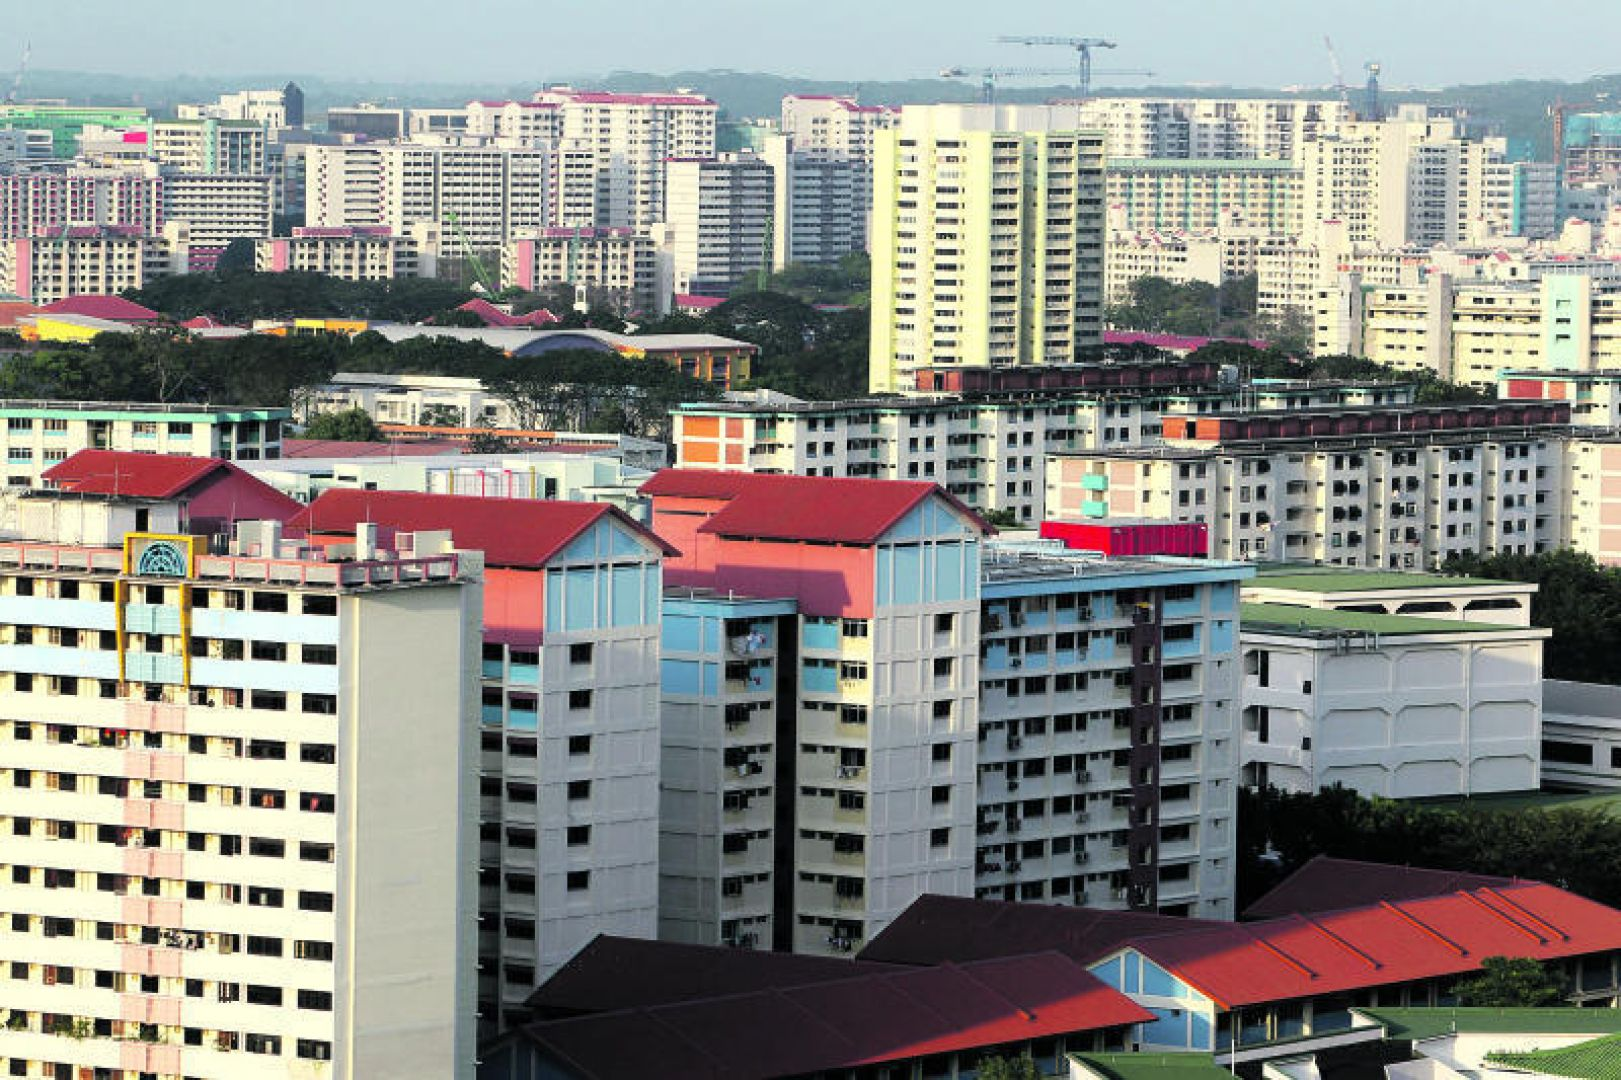 Subletting HDB flats has strict regulations that need to be followed